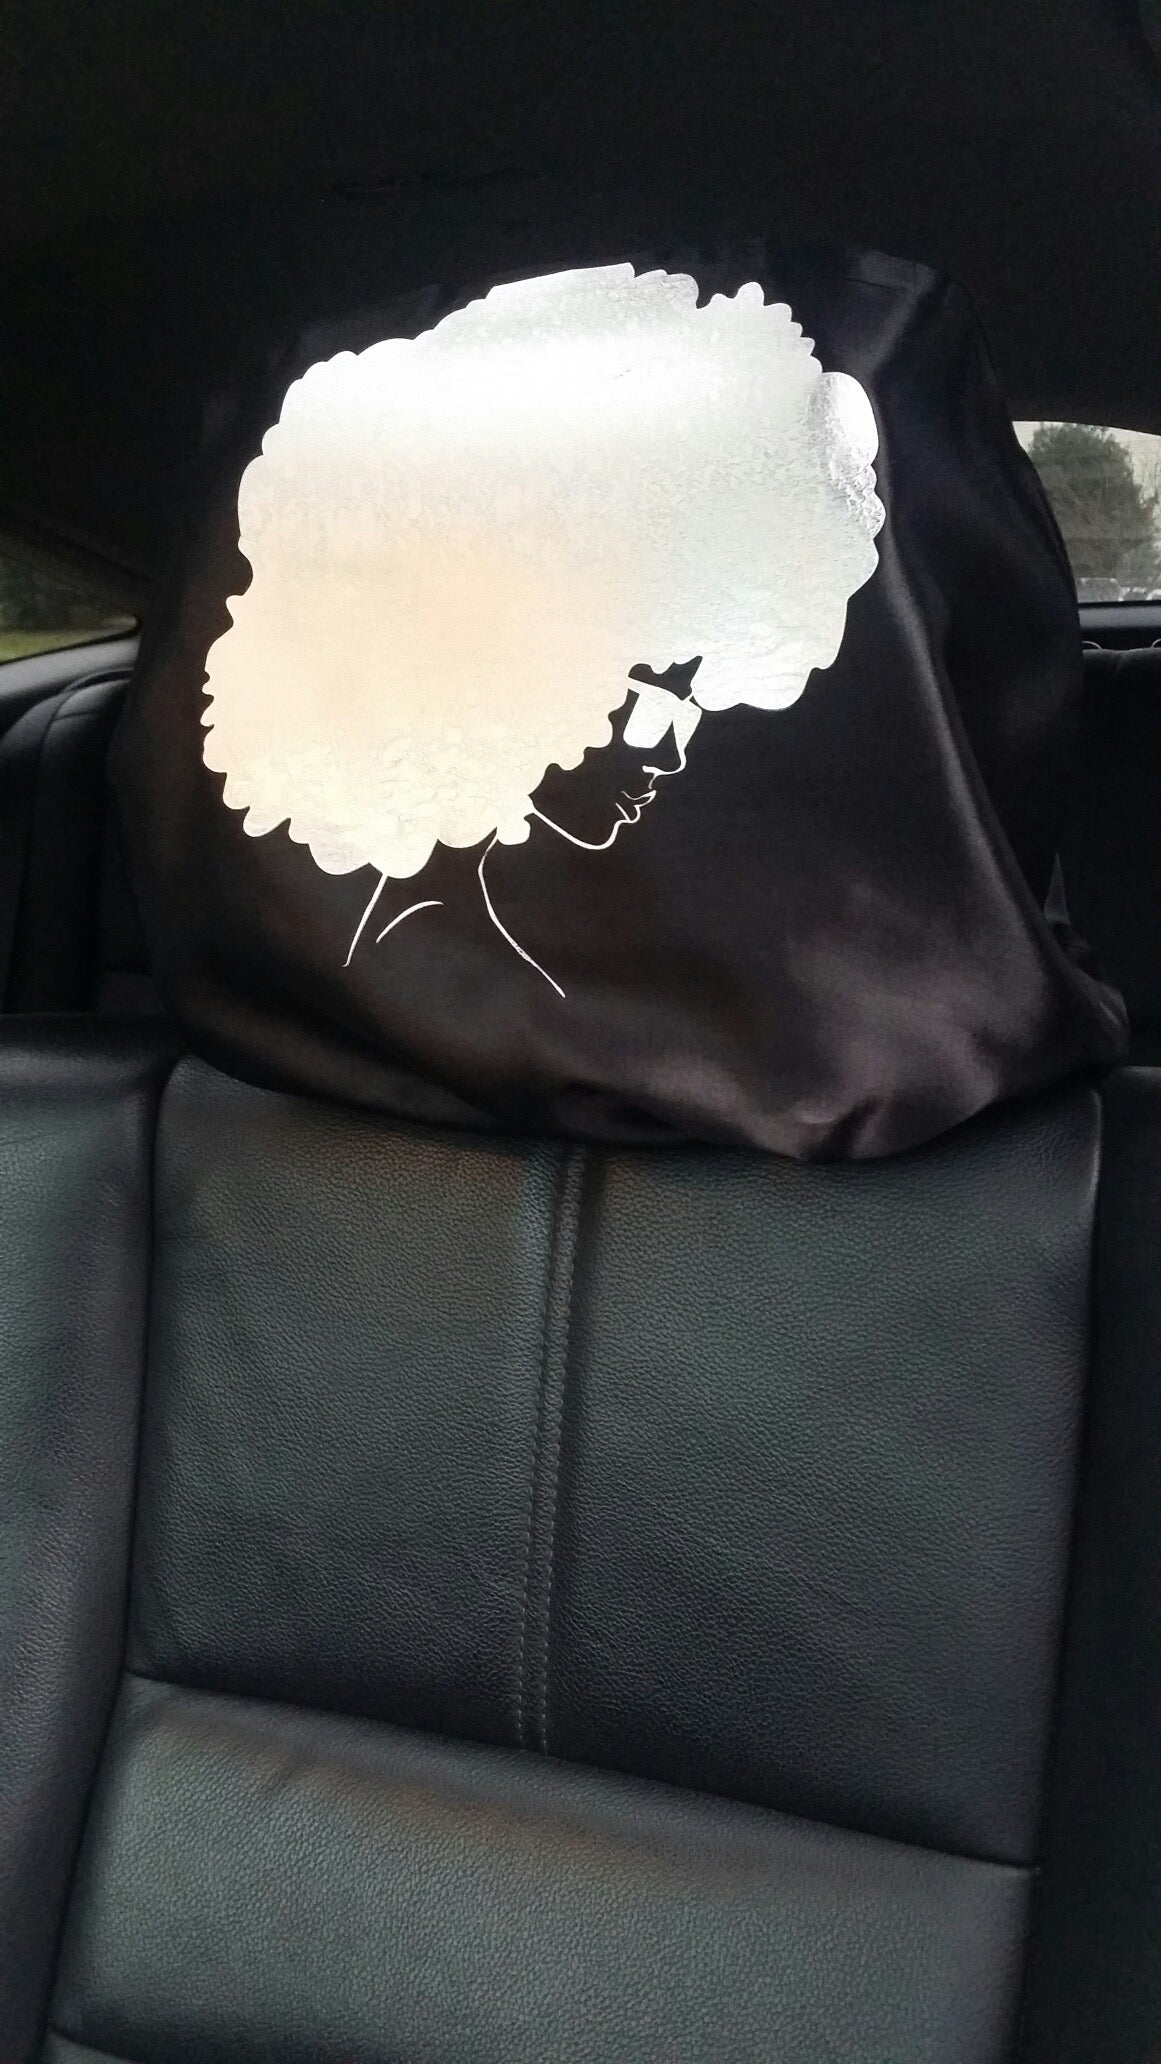 Fro Friendly, The First Satin Cover For Your Headrest!